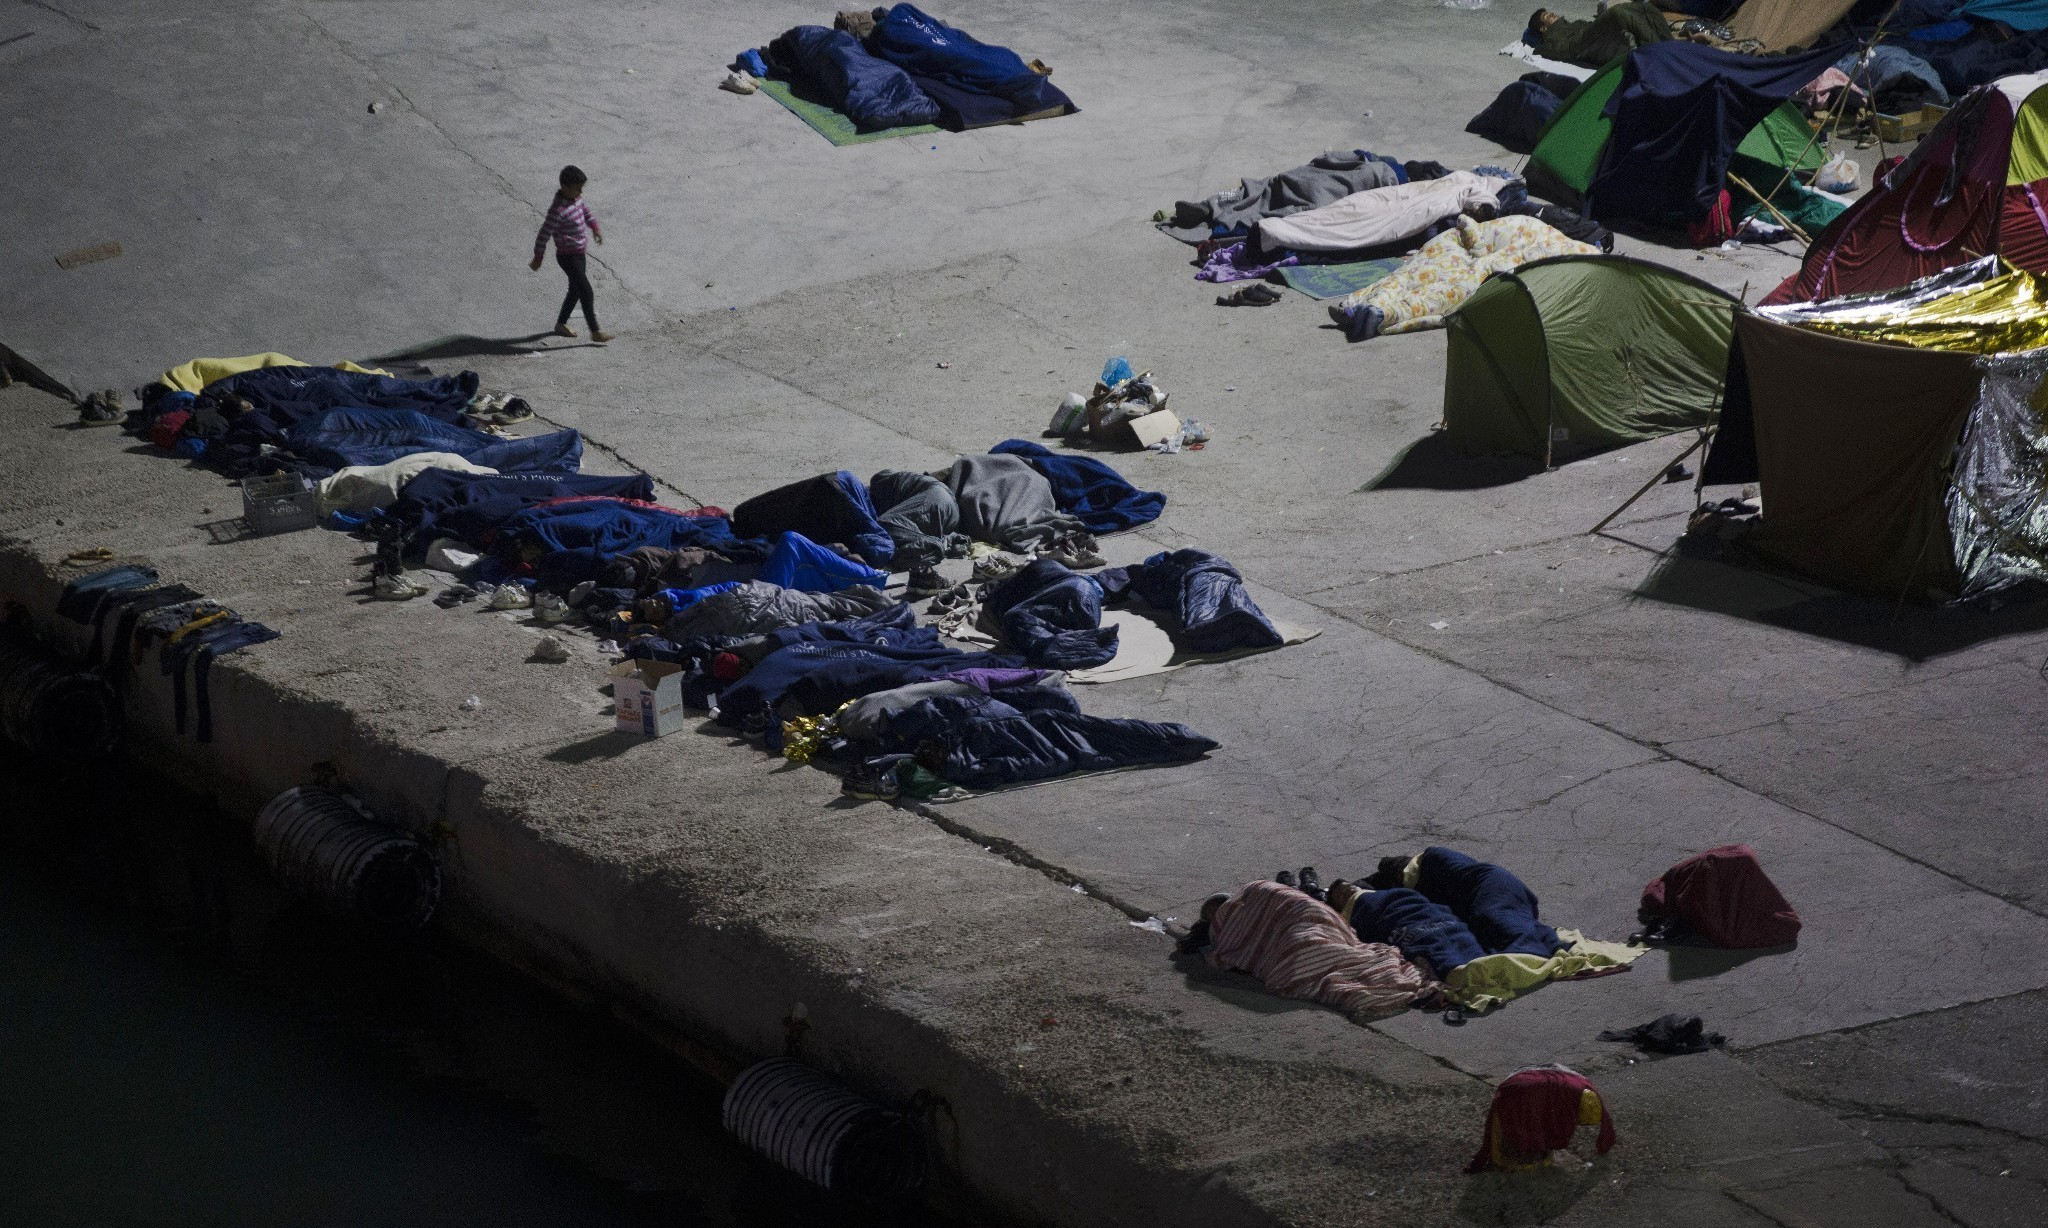 Refugees in Greece warn of suicides over EU-Turkey deal